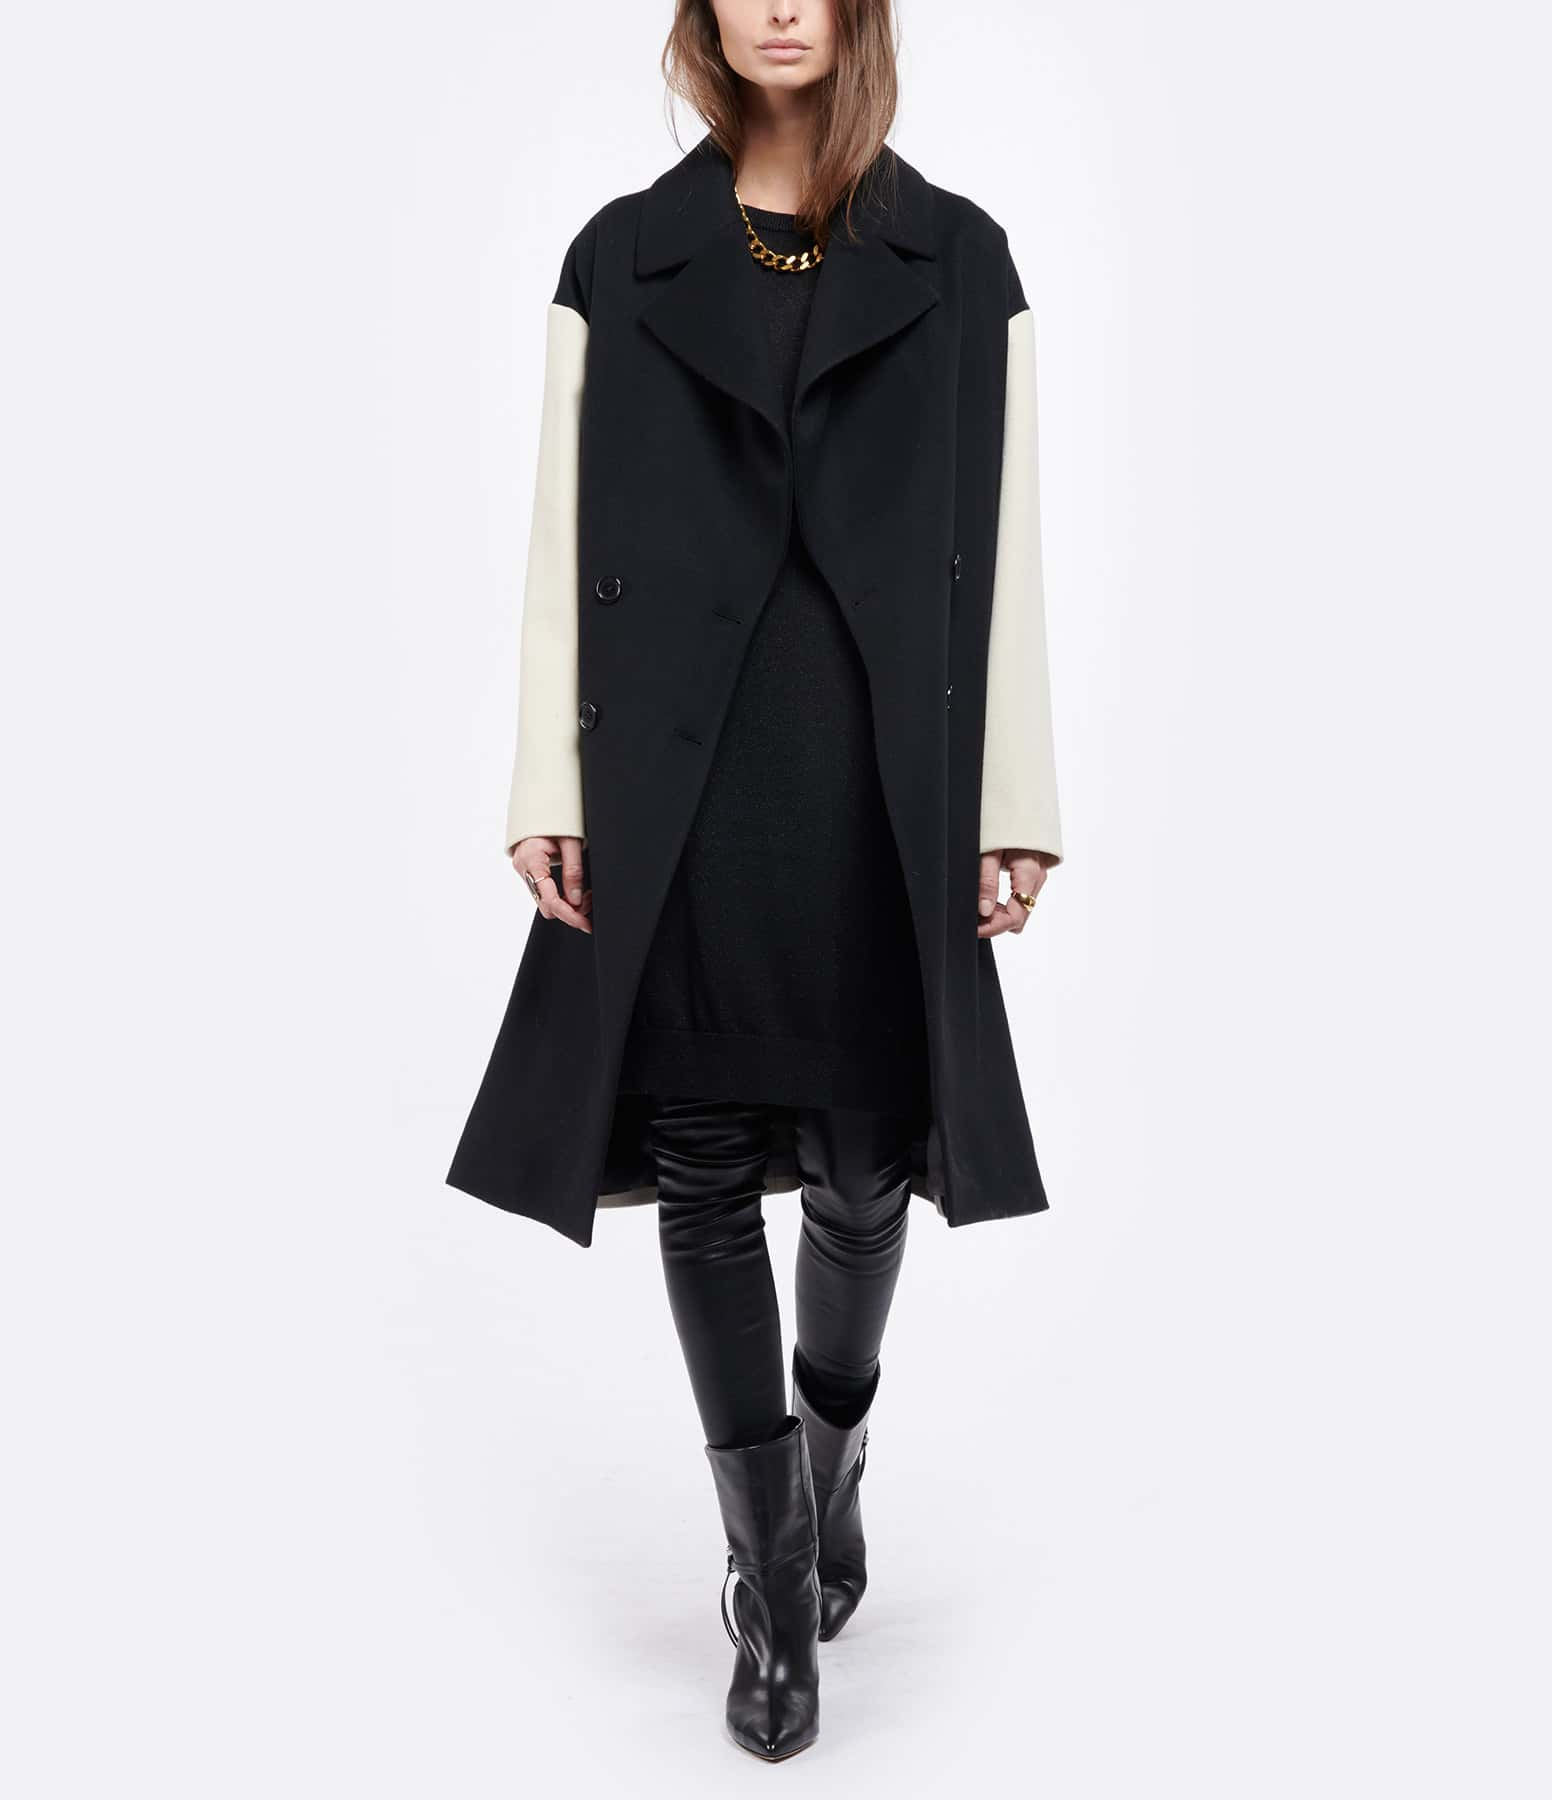 JEANNE VOULAND - Robe Pull Cana Lurex Noir